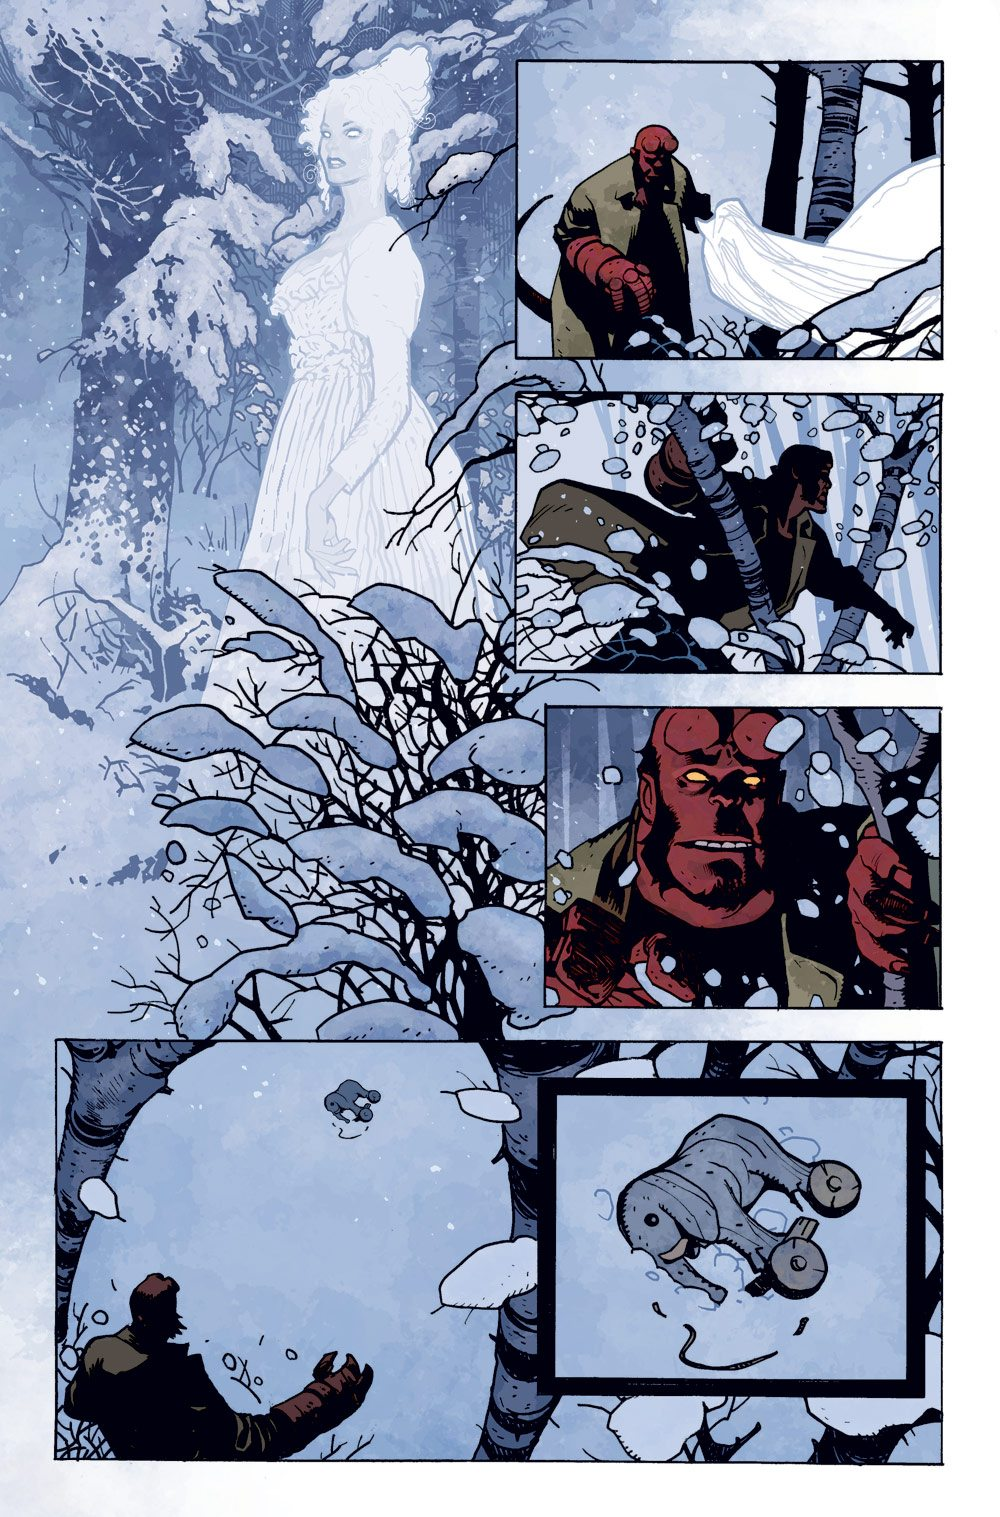 HBYKRMP PG 02 SOL - Exclusive Preview of Mike Mignola and Adam Hughes' Hellboy: Krampusnacht